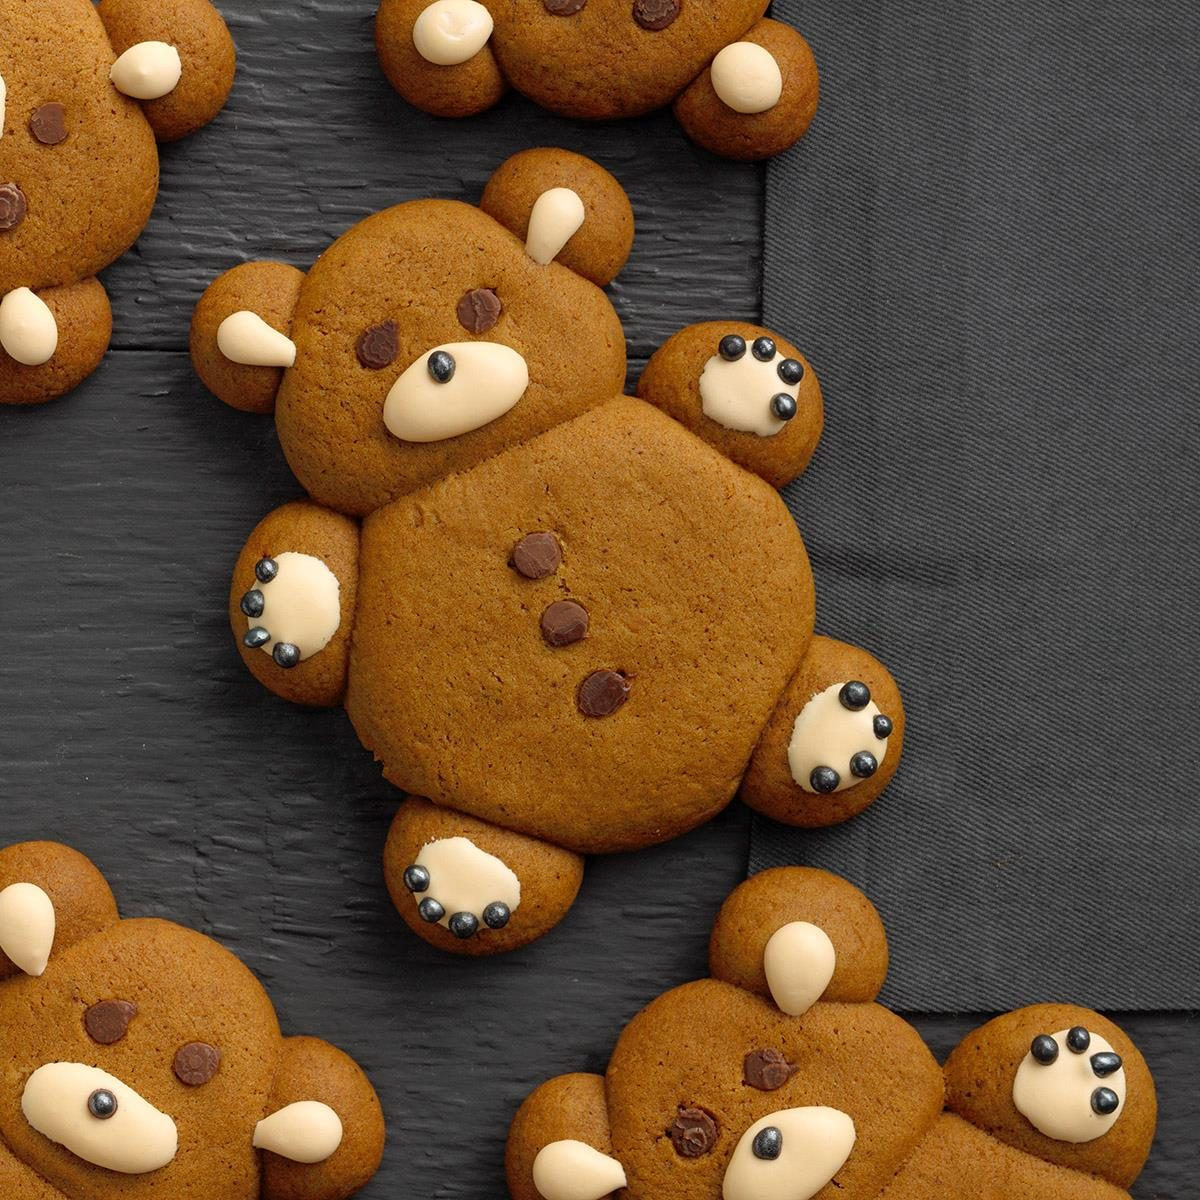 Gingerbread Teddy Bears